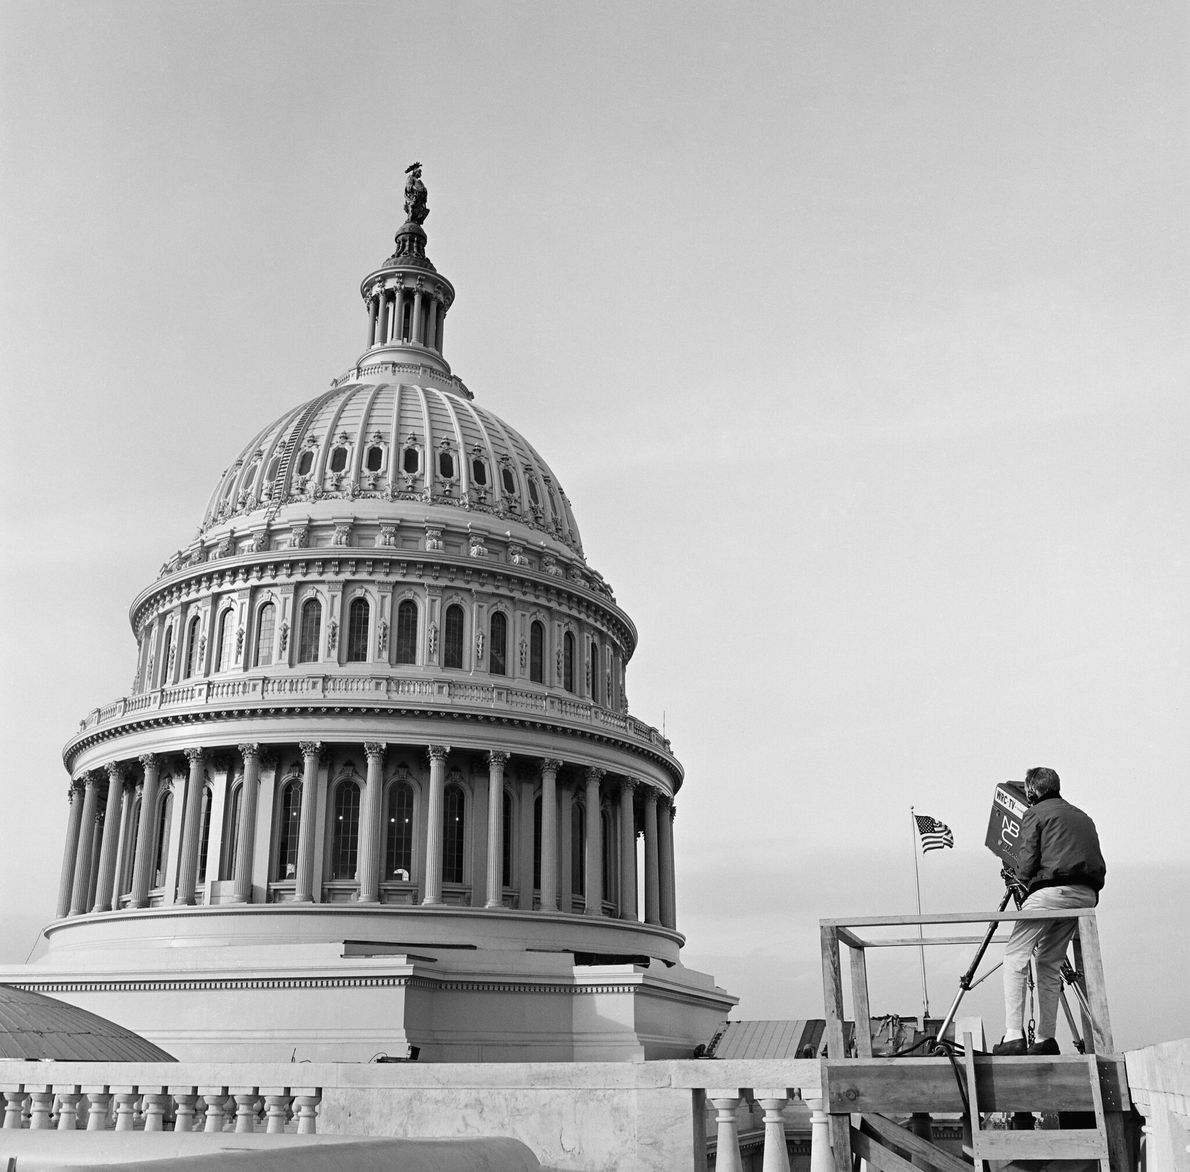 A cameraman in front of the dome of the U.S. Capitol Building during the inauguration of ...